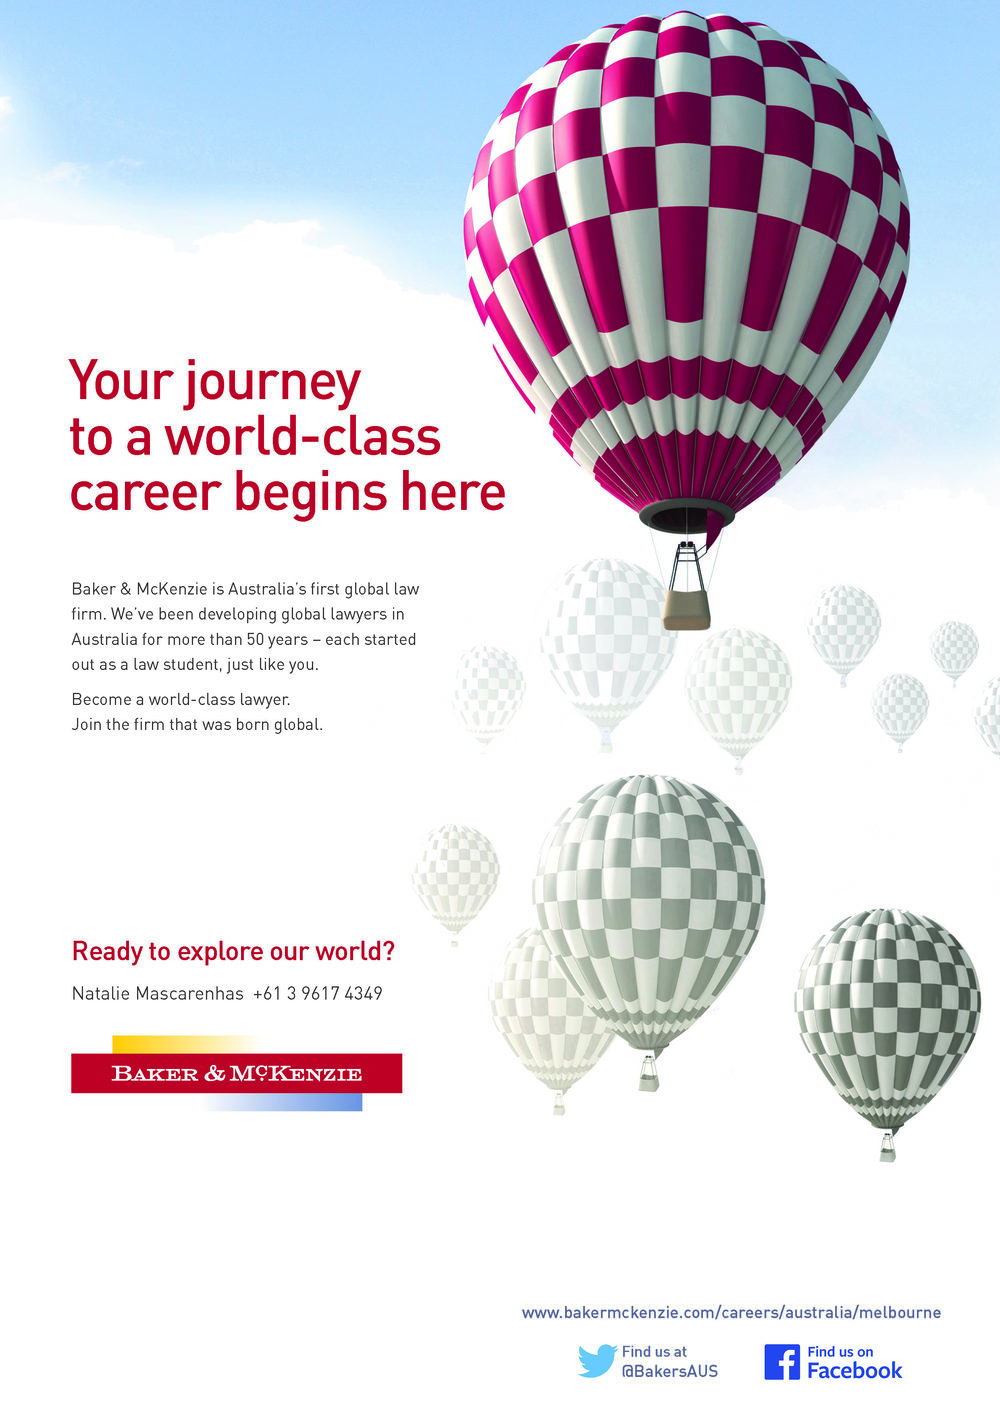 SC 15-16 A4 Advert - Career - Melbourne-1631432-v1-MELDMS.JPG